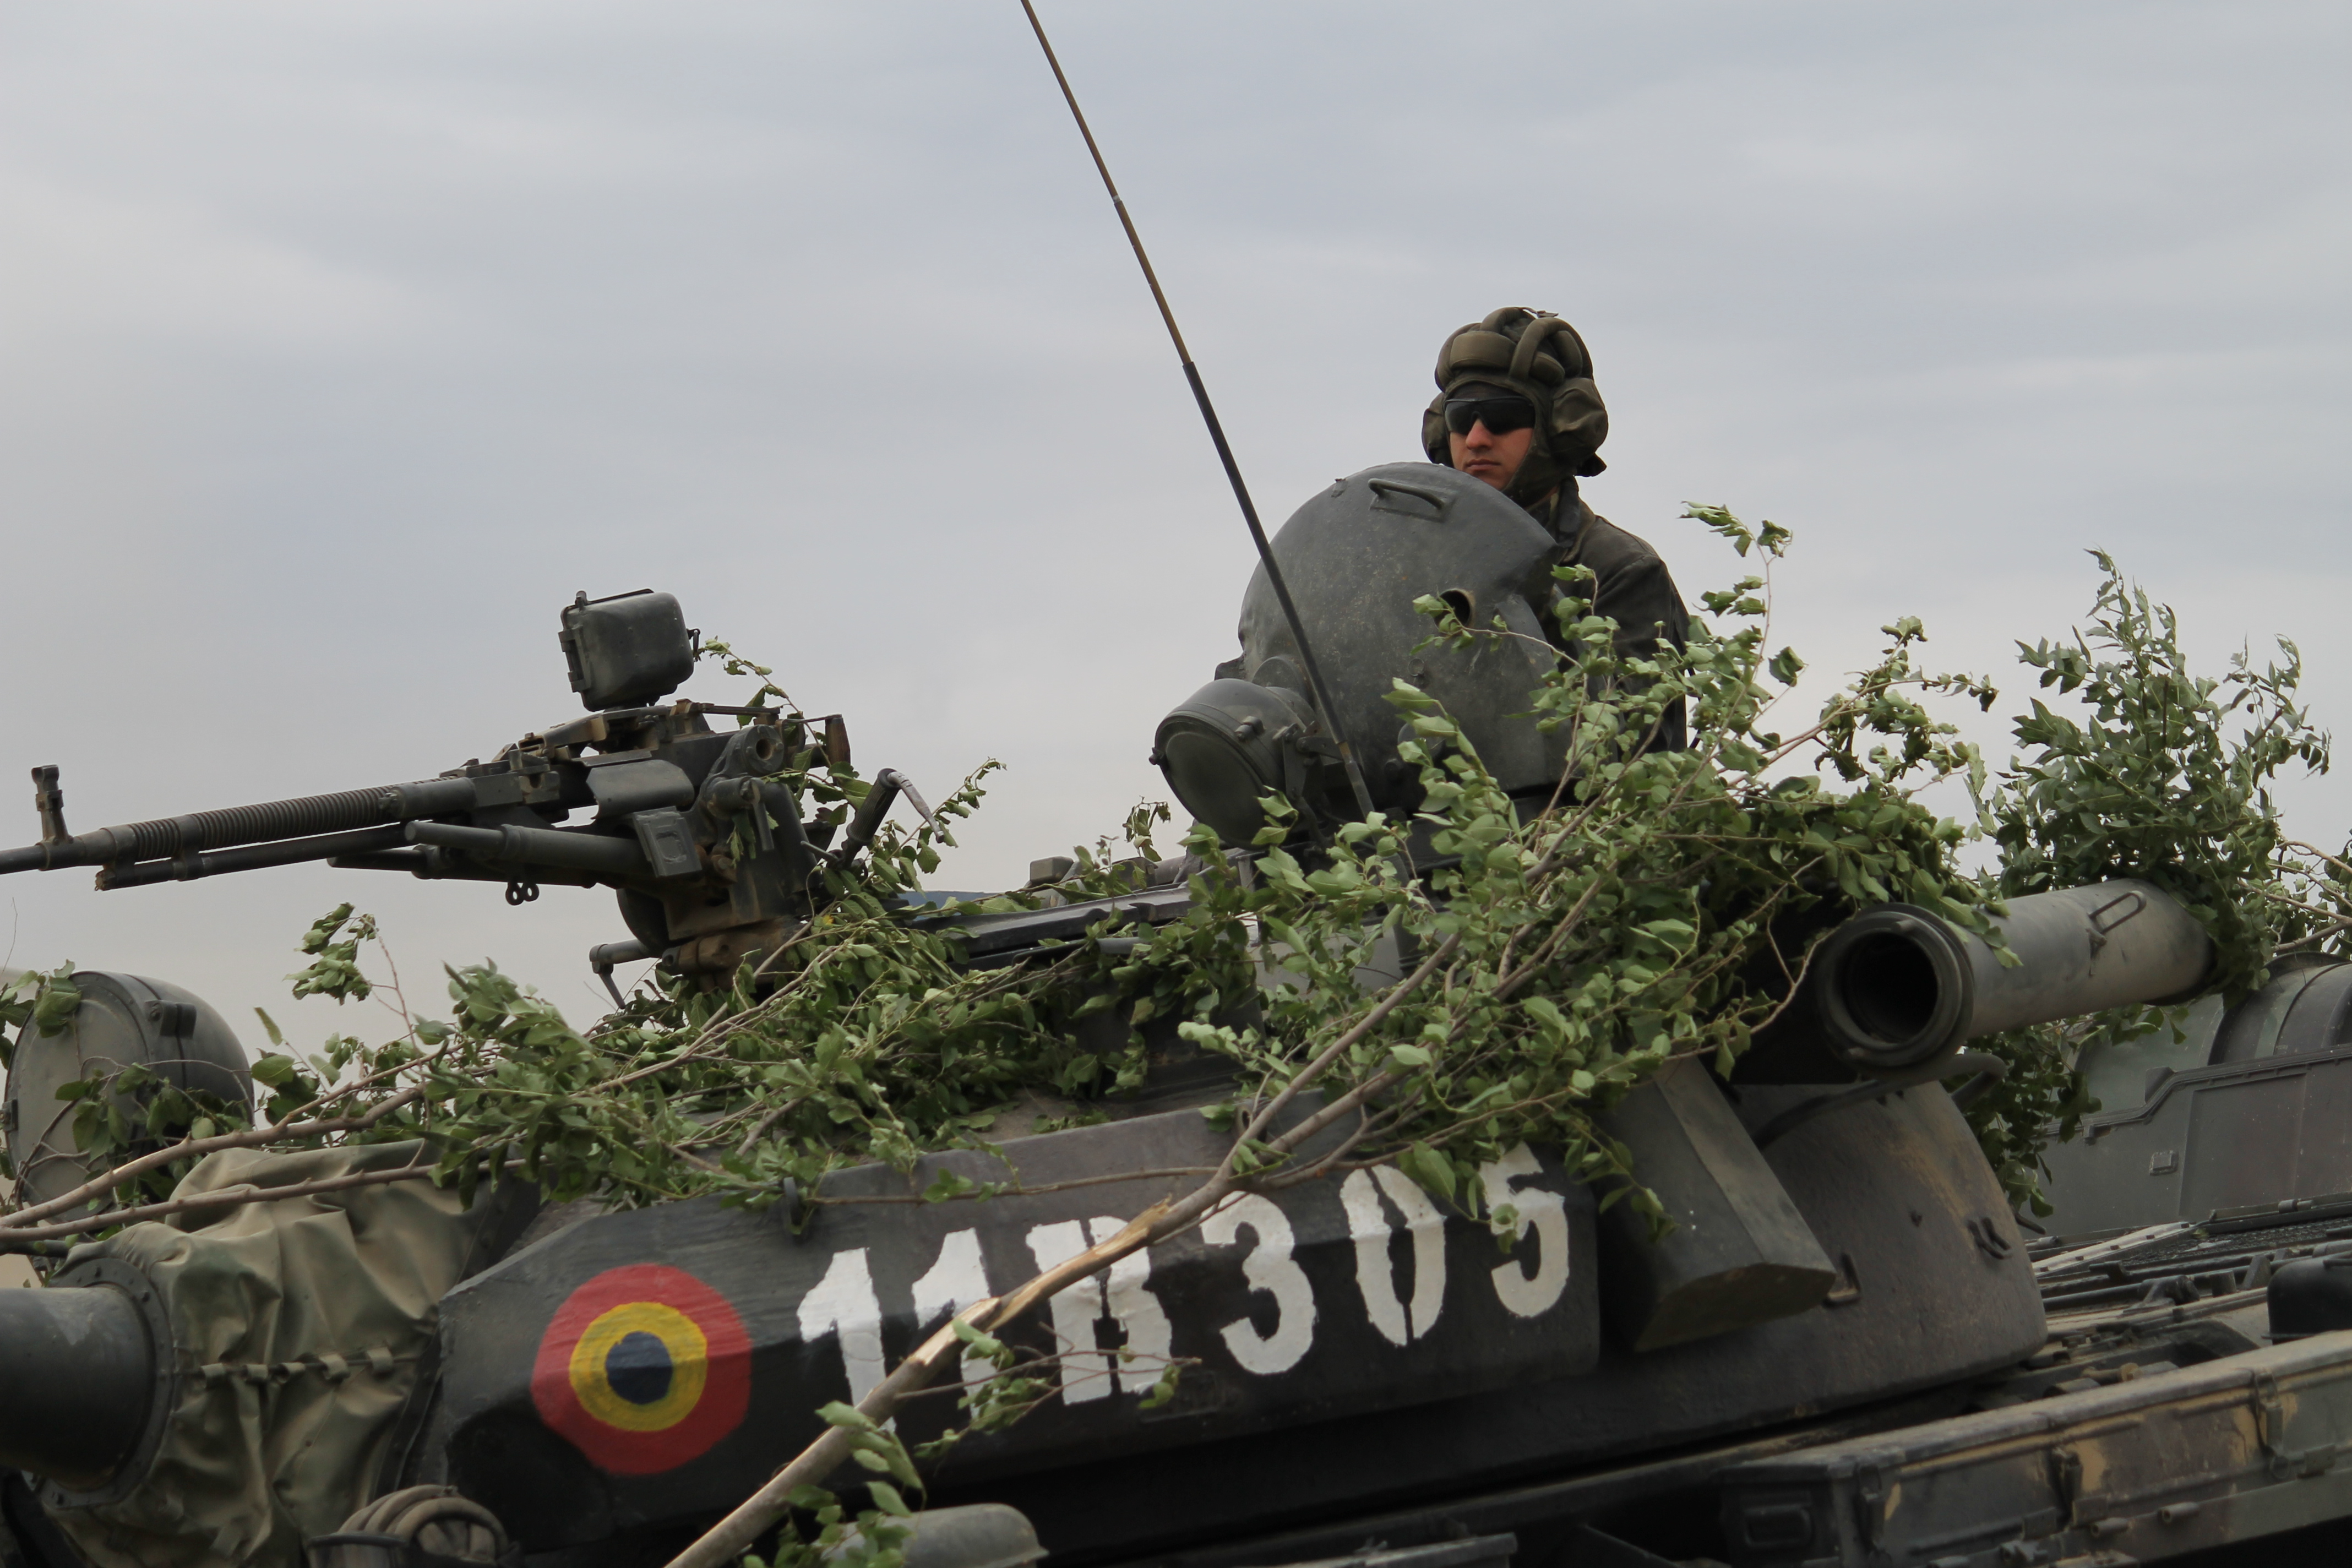 A Romanian soldier rides in a T-85 main battle tank across the bridge during the river crossing. (Jen Judson/Staff)